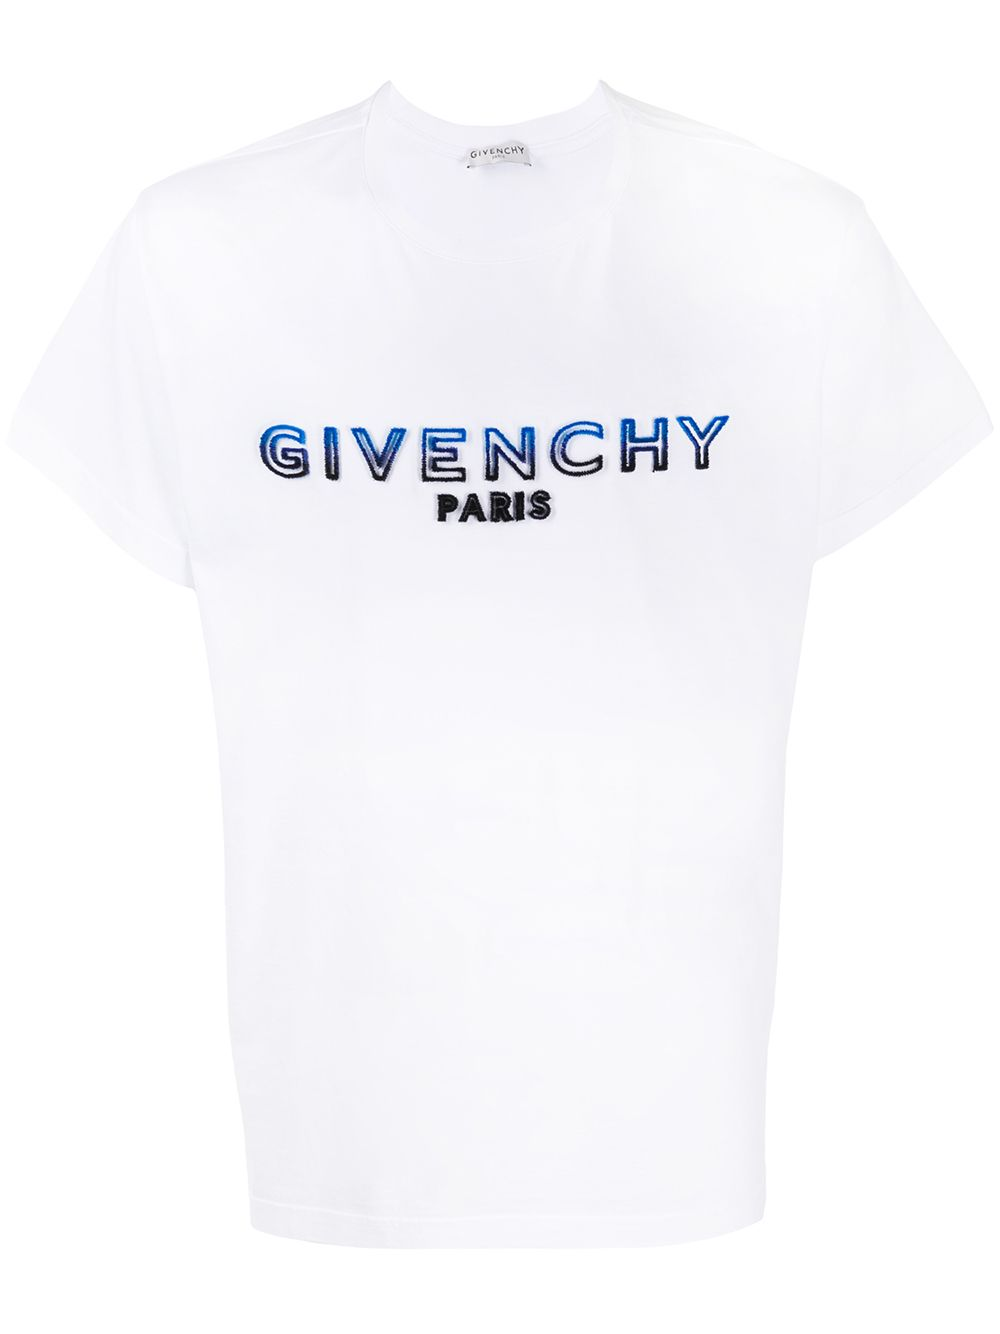 T-shirt con logo floccato bicolore blu/nero Givenchy in cotone bianco GIVENCHY | T-shirt | BM70UY3002114